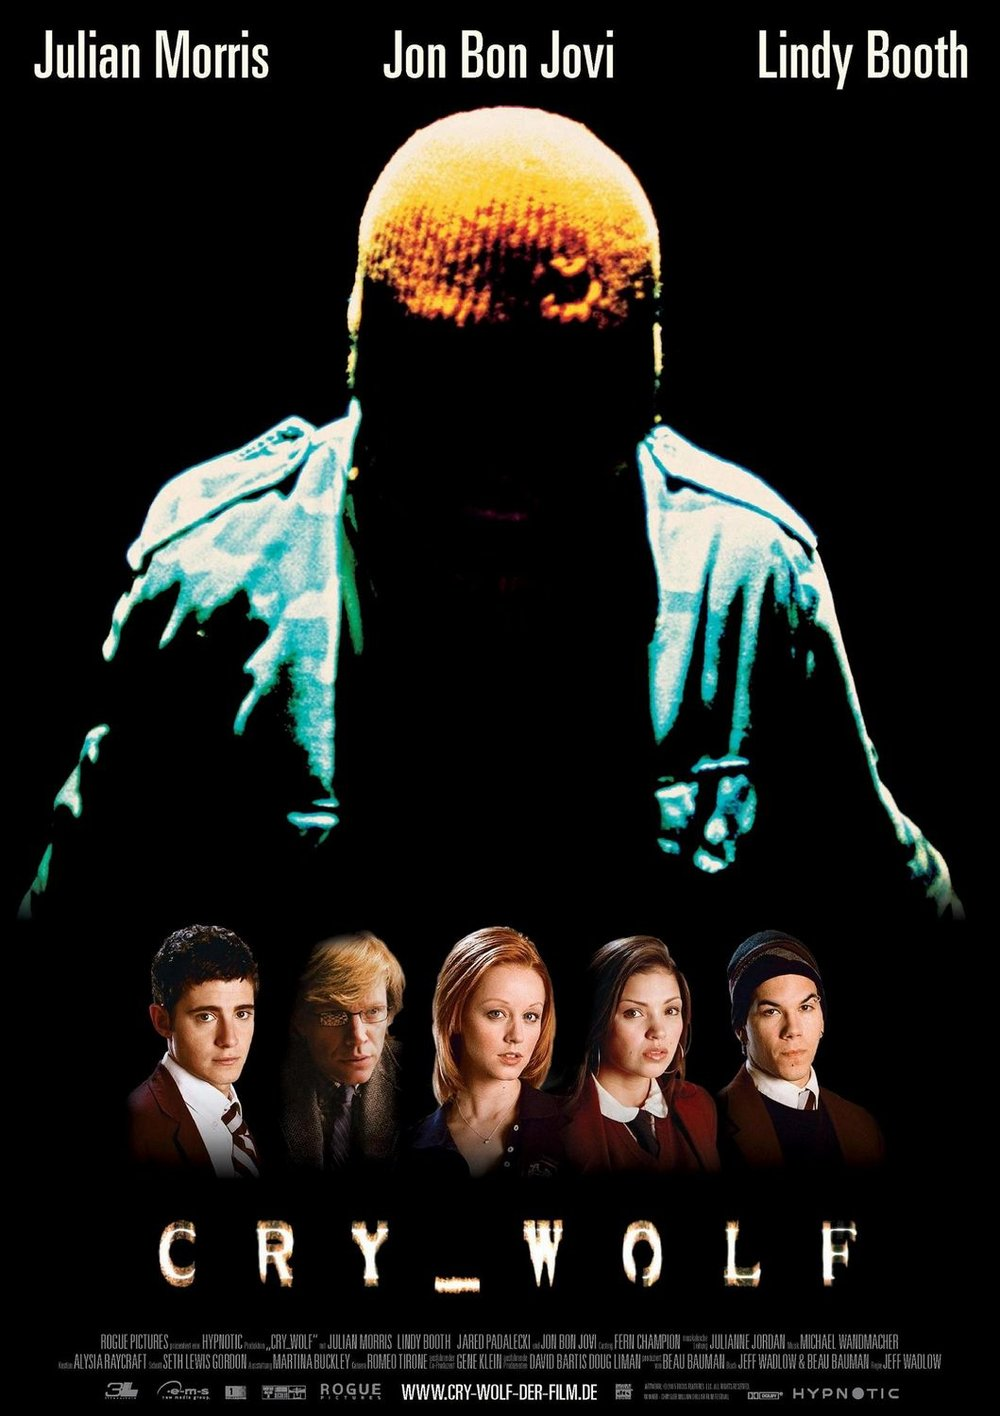 30. Cry Wolf (2005) - Guilty for dating itself by using early internet era gimmicks, Jeff Wadlow's Cry_wolf is still a charming little piece of slasher mind games. Capitalizing on its whodunit approach, it's the end of this early aughts thriller that forces it to the near bottom of our list.